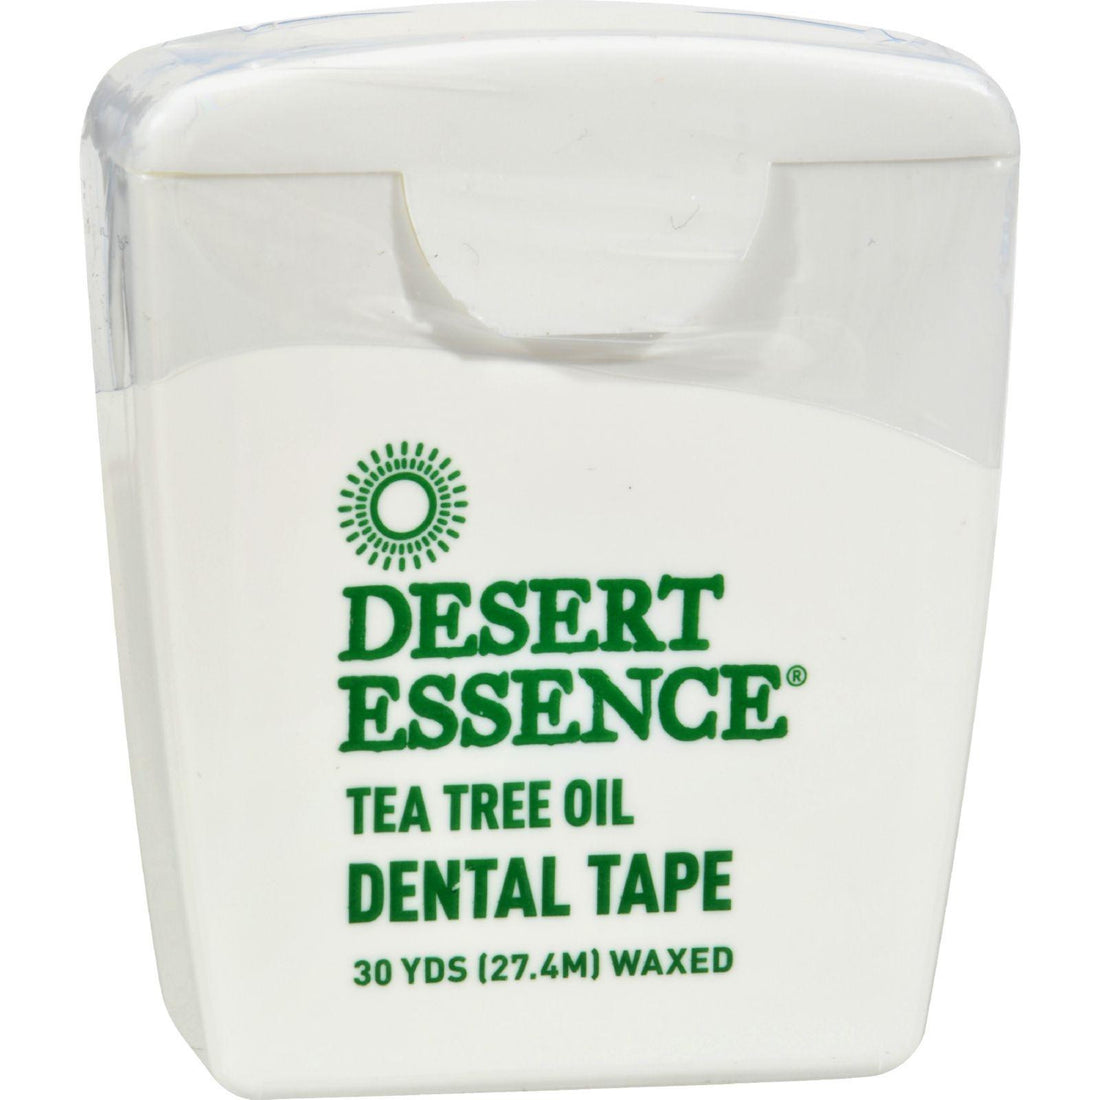 Mother Mantis: Desert Essence Tea Tree Oil Dental Tape - 30 Yds - Case Of 6 Desert Essence